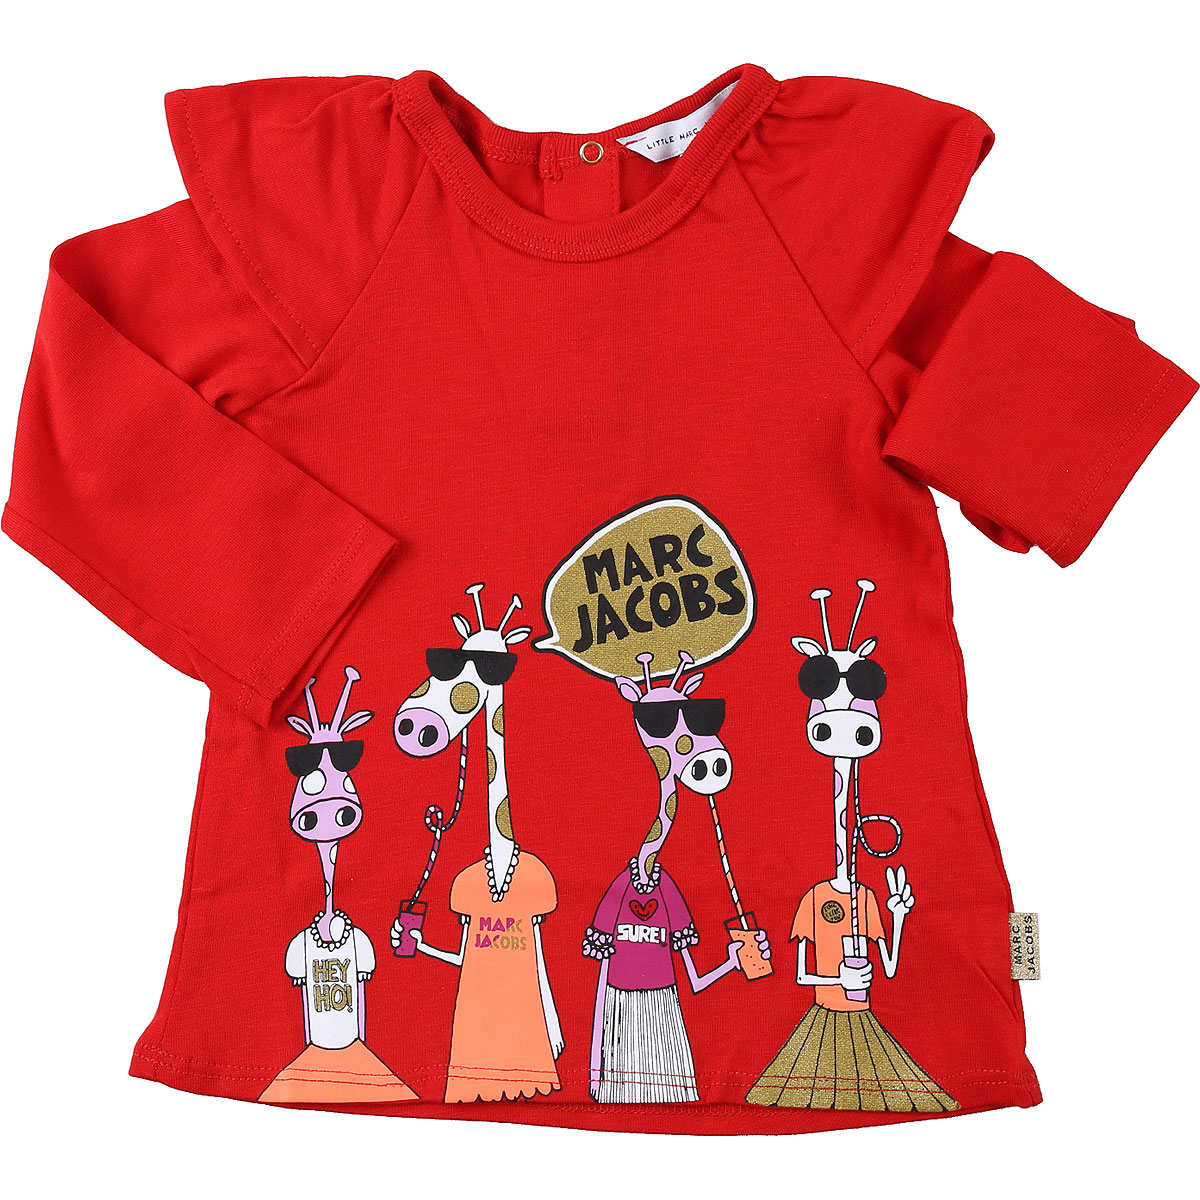 Marc Jacobs Baby T-Shirt for Girls On Sale, Red, Cotton, 2019, 12M 18M 2Y 3M 3Y 6M 9M